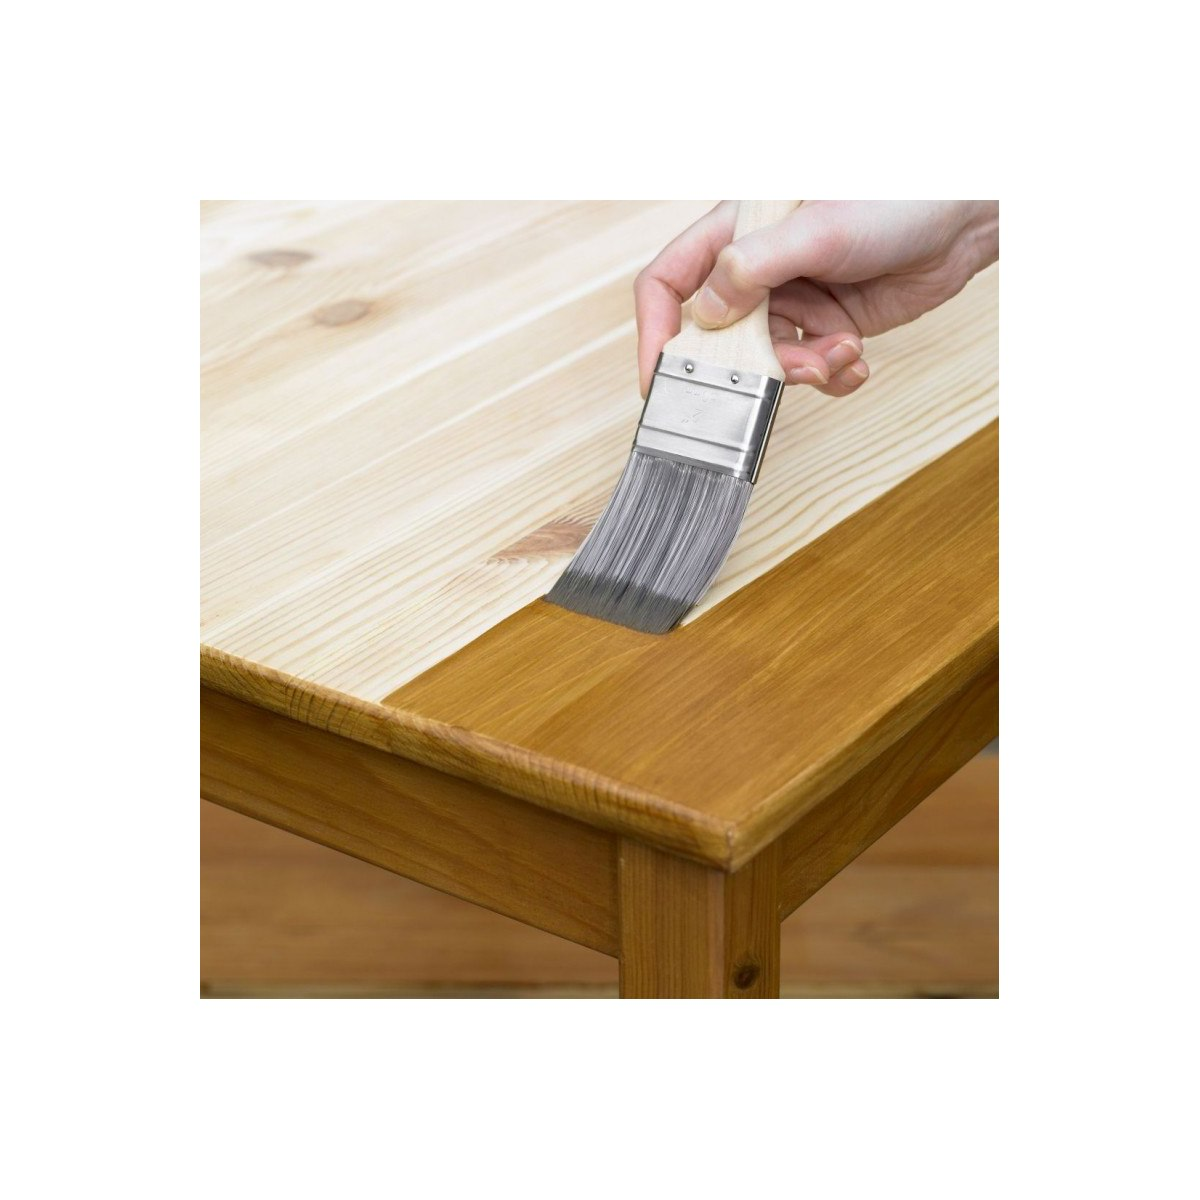 Apply Danish Oil to Wooden Furniture